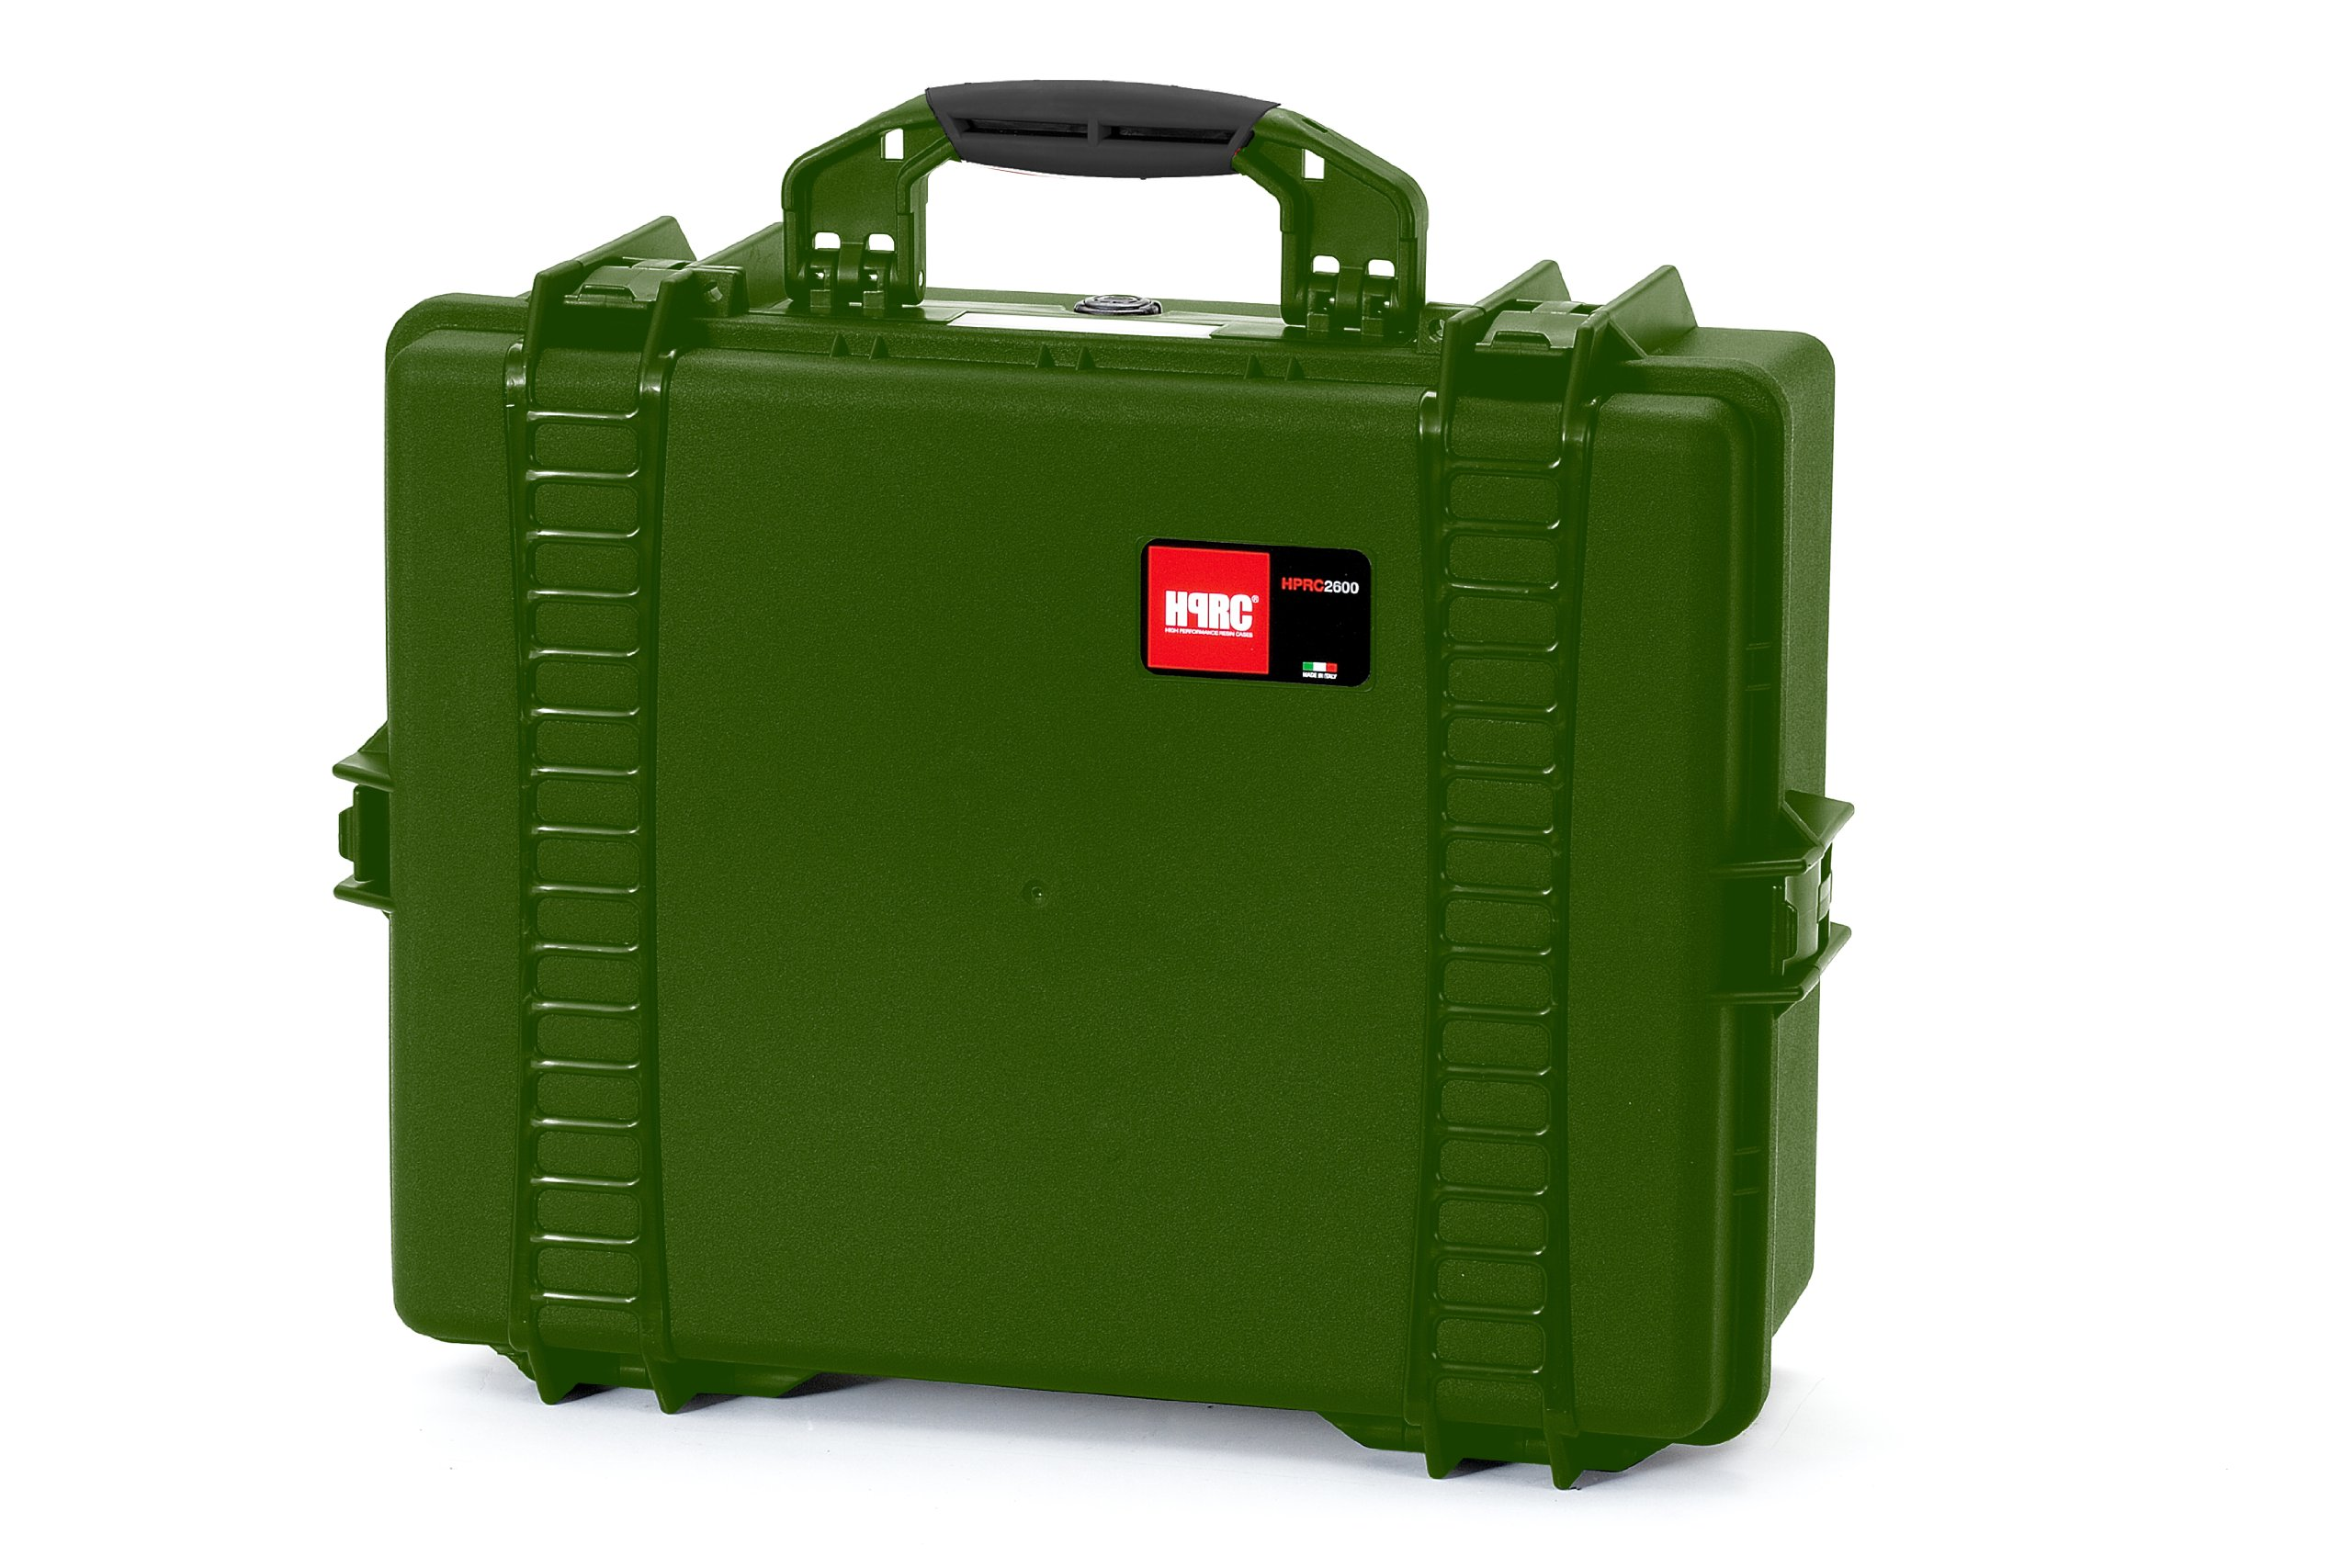 HPRC 2600F Hard Case with Cubed Foam (Olive) by HPRC